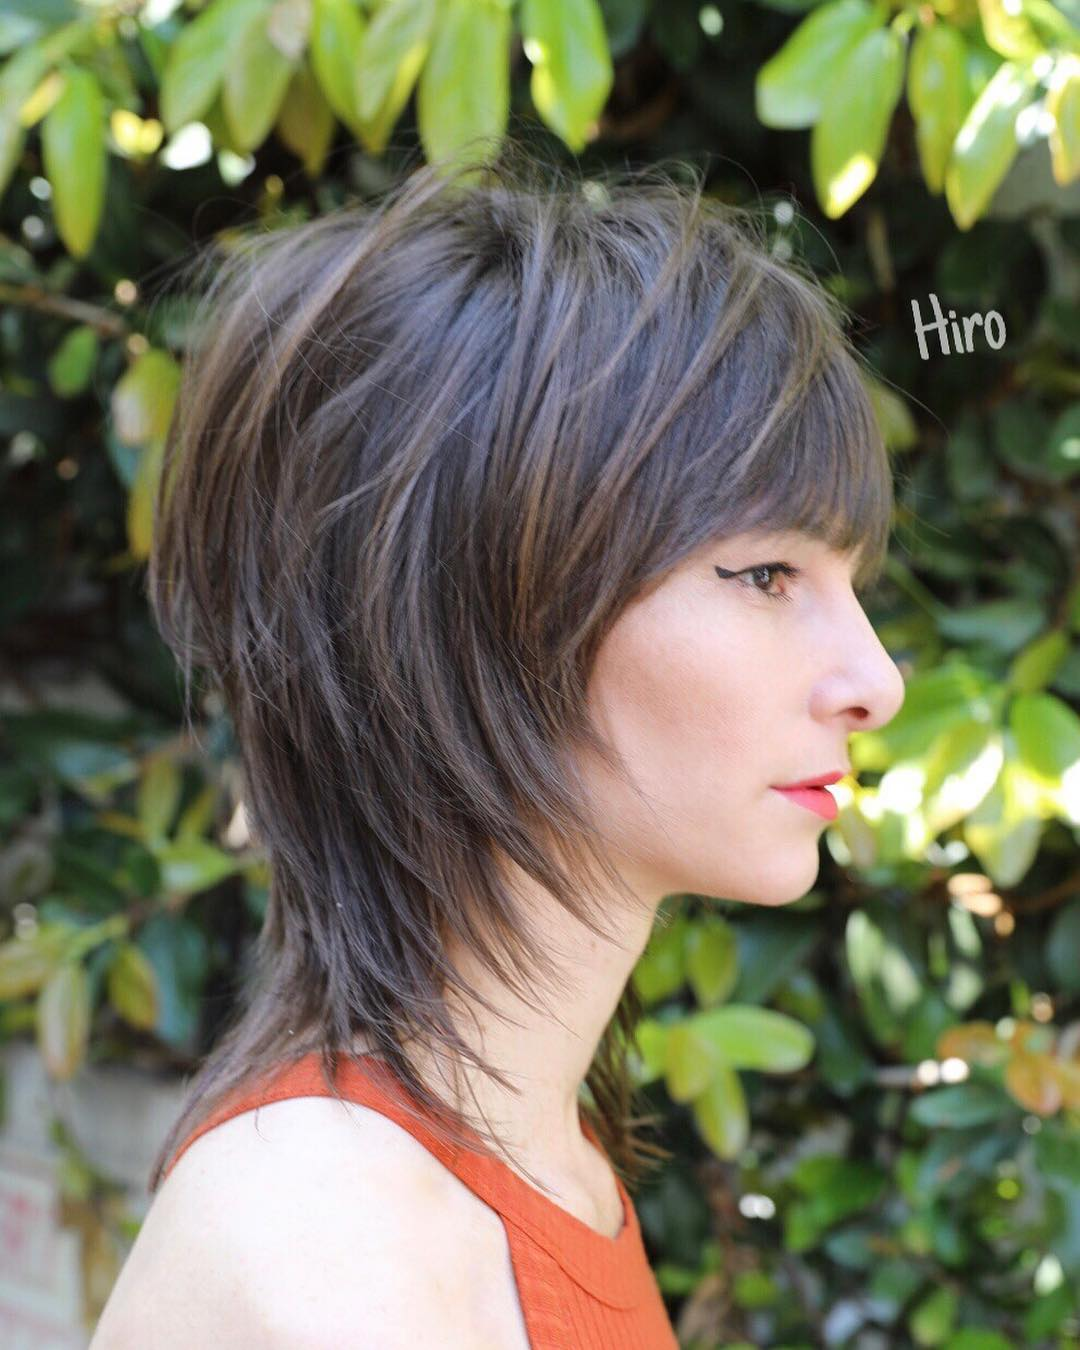 Shaggy Banged Mullet with Face Framing Fringe on Brunette Highlighted Hair with Messy Beach Texture Short Summer Hairstyle